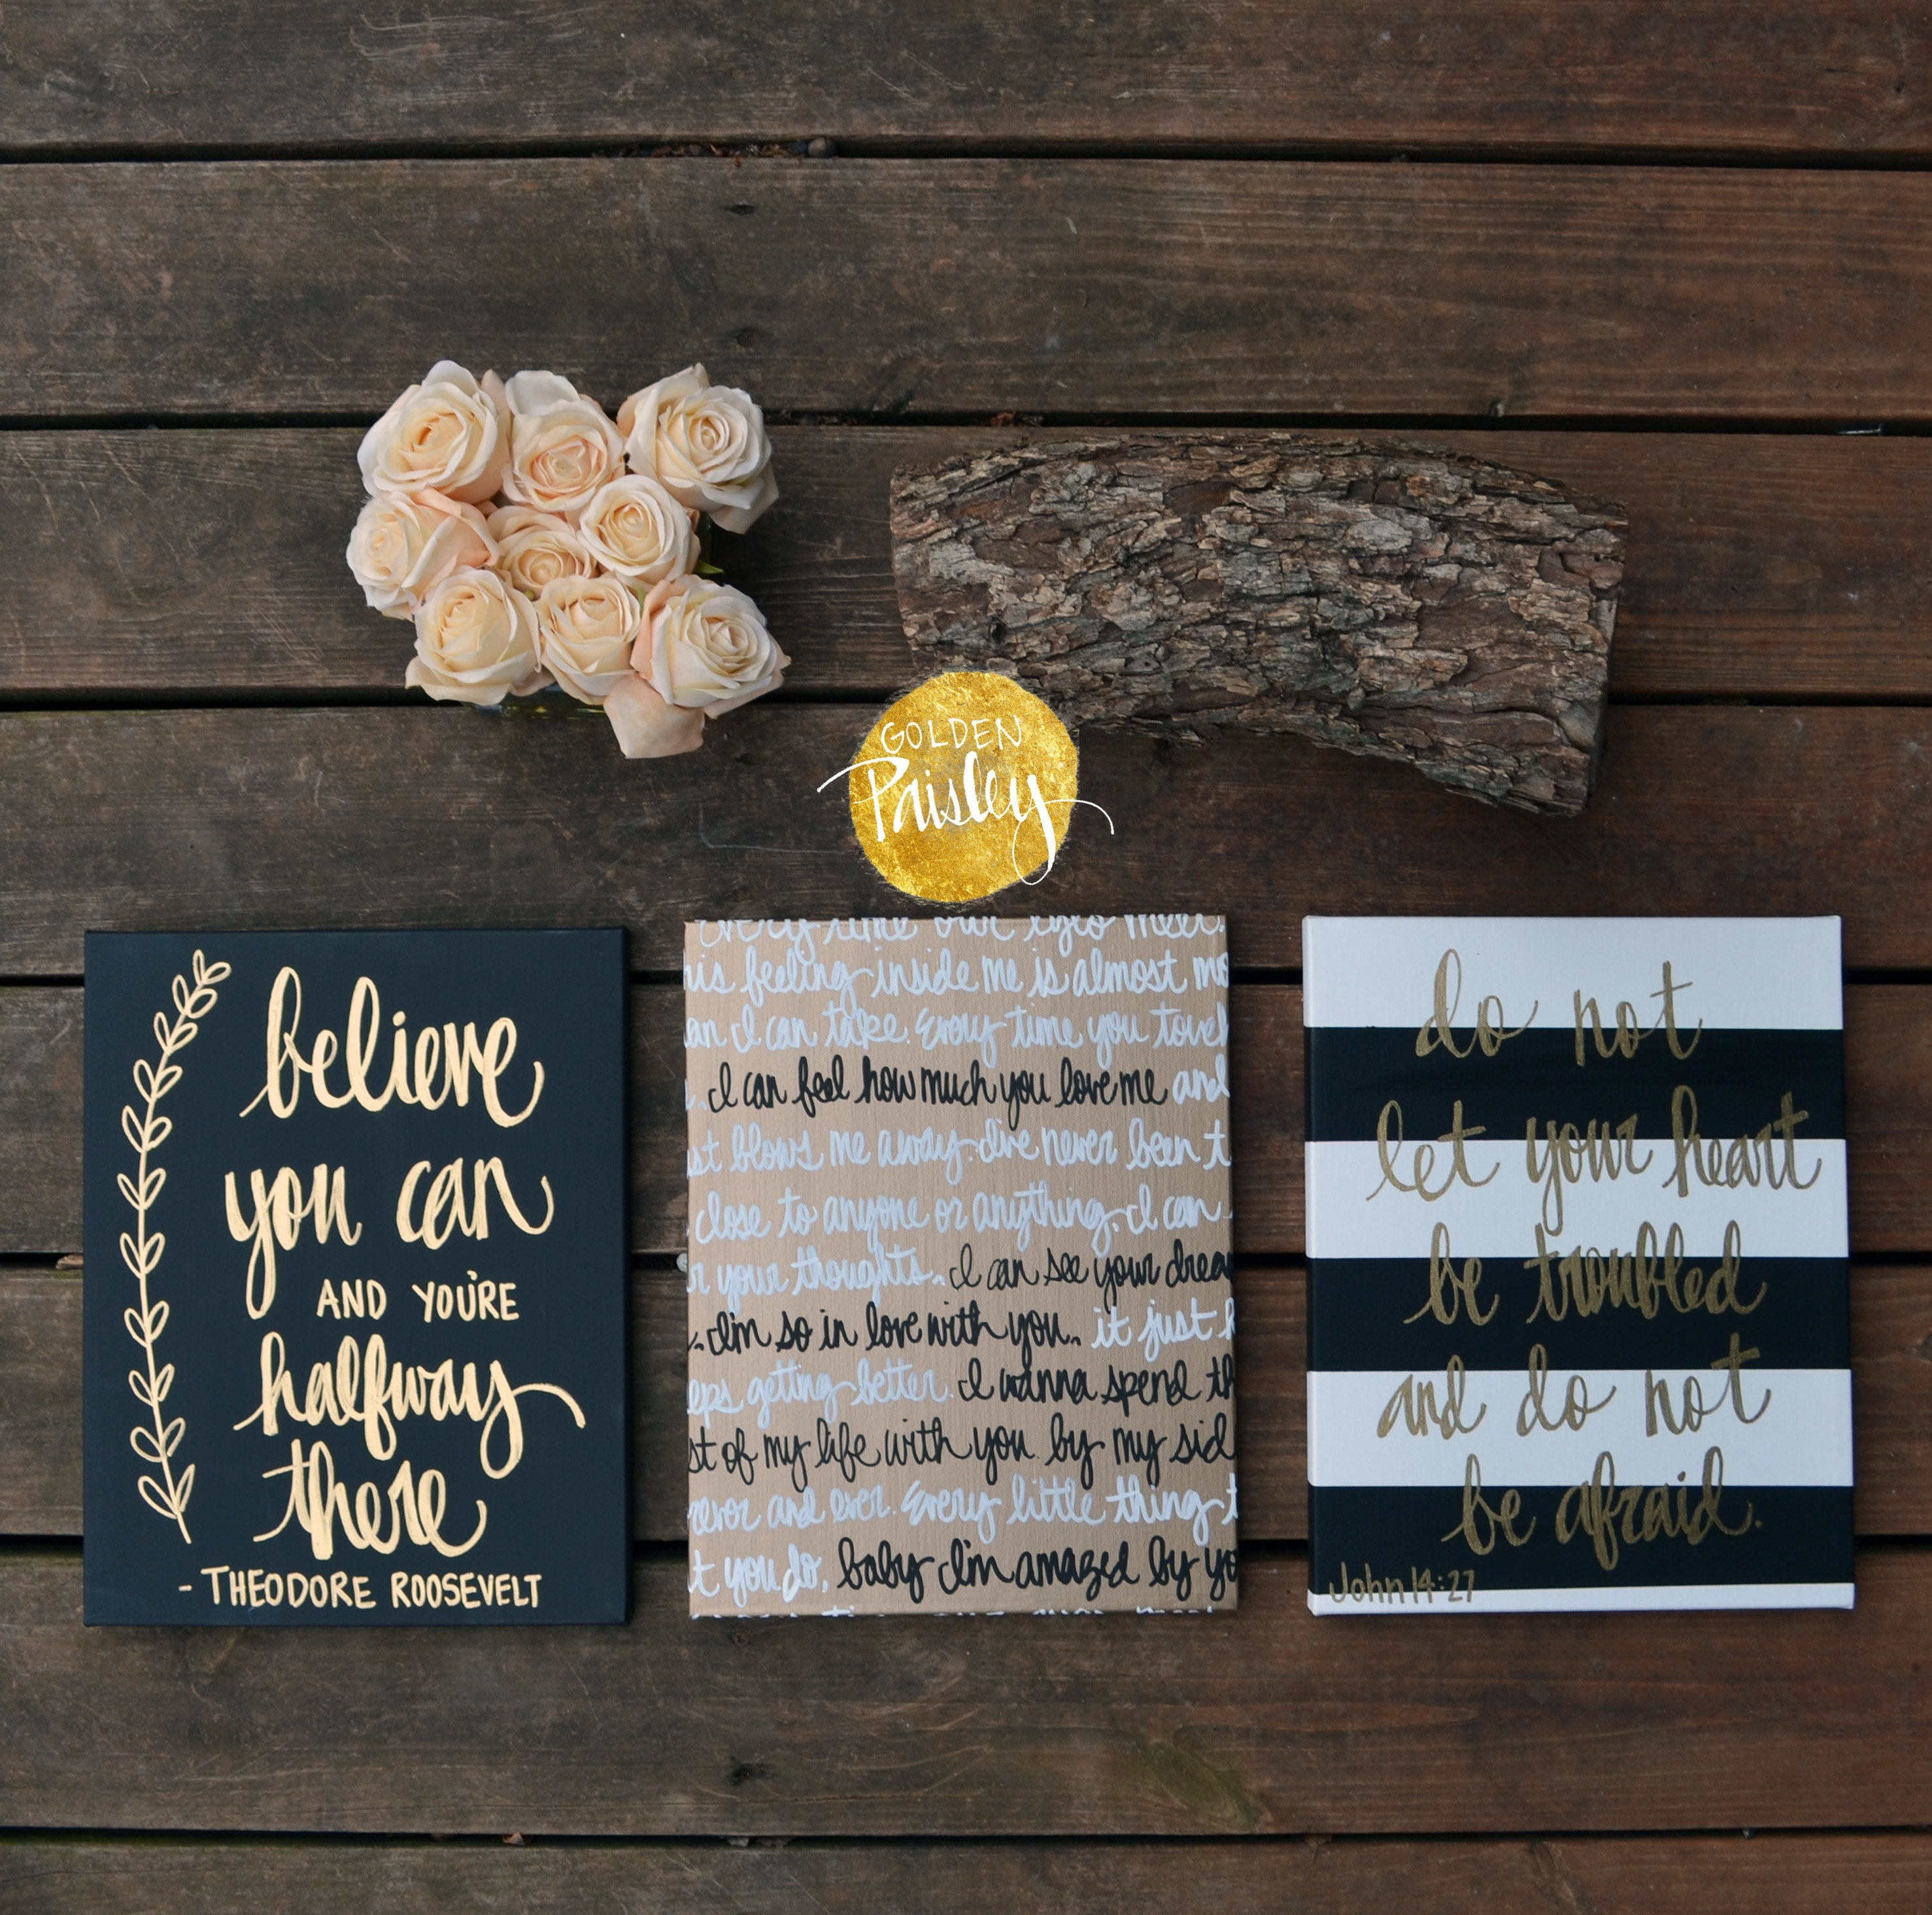 "Black And Gold Inspirational Quote Wall Art ""Believe You Can"" Regarding Newest Black And Gold Wall Art (View 3 of 20)"